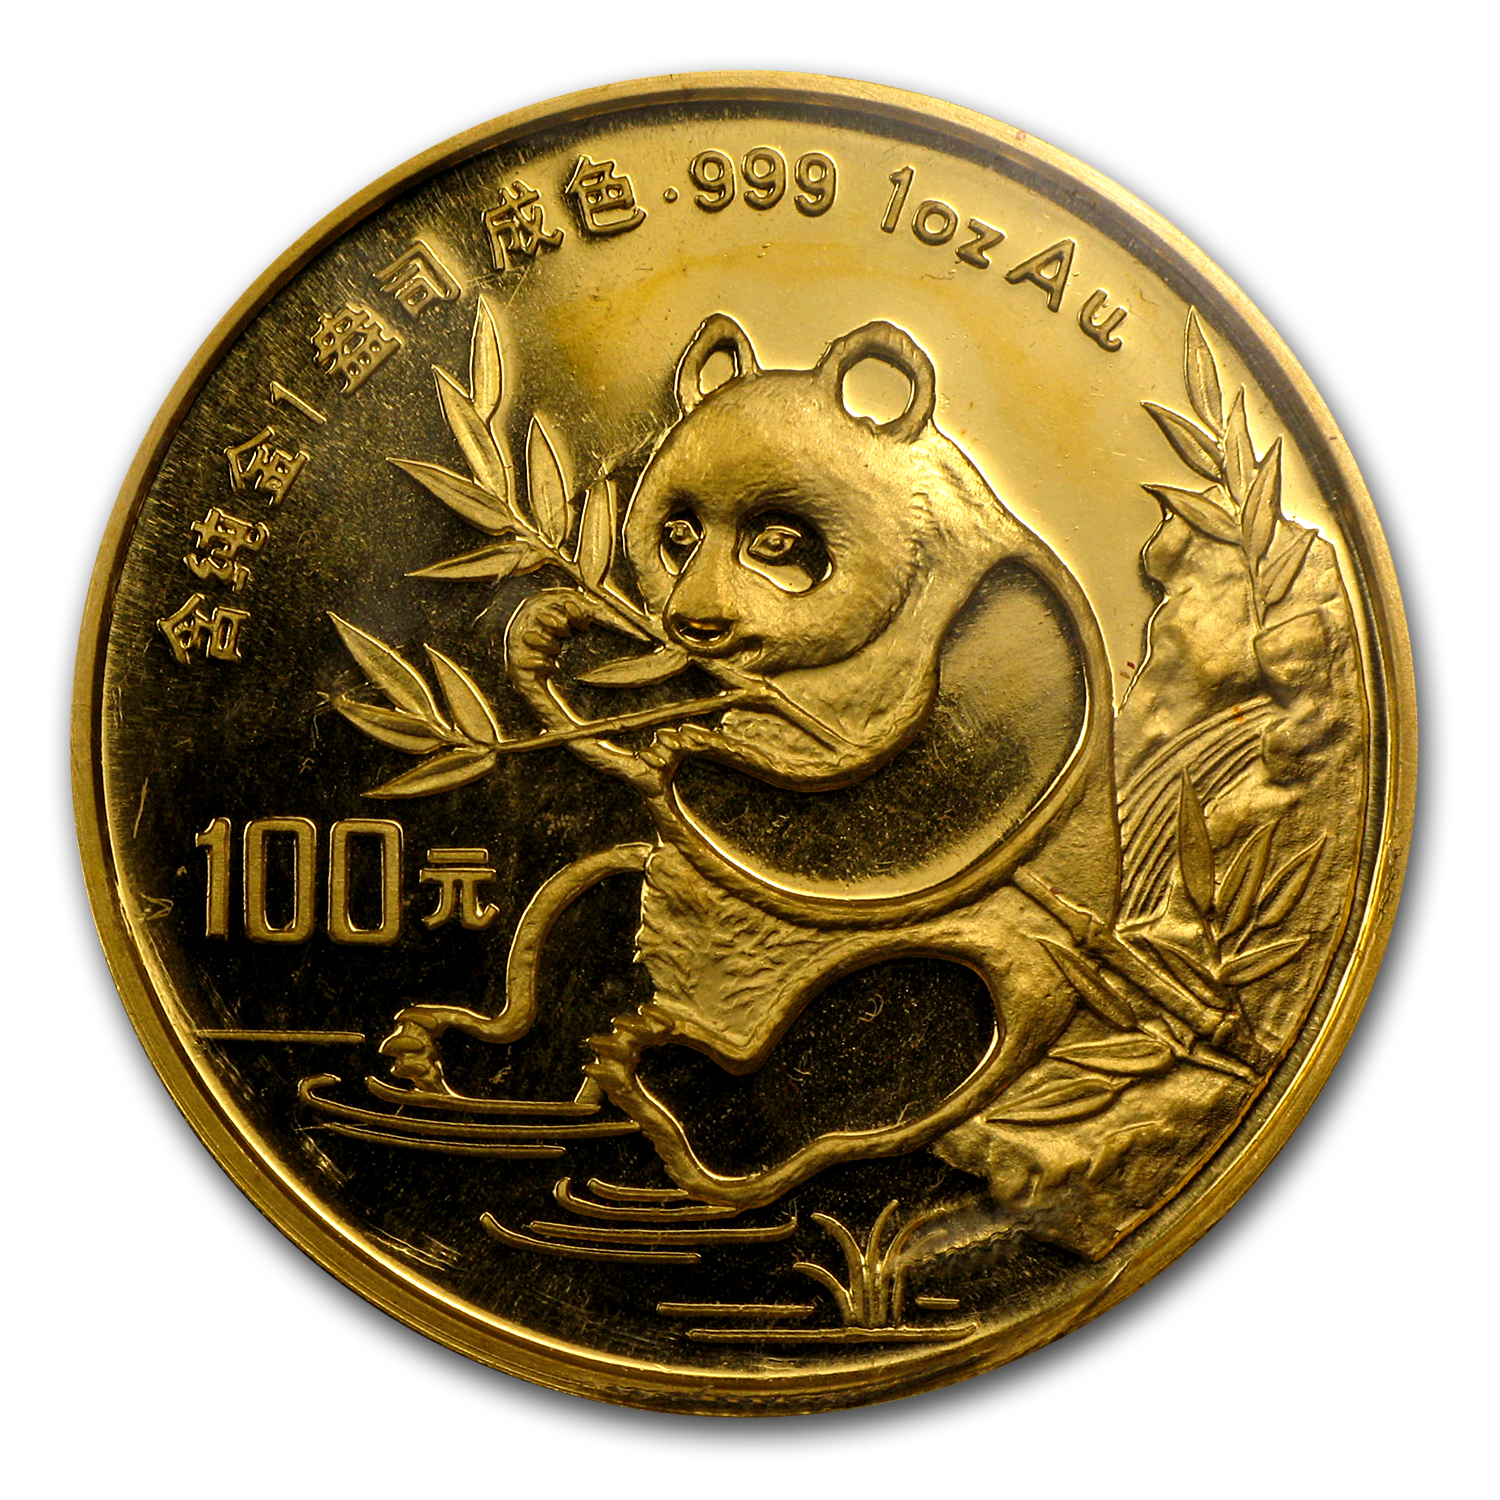 1991 China 1 oz Gold Panda Large Date BU (Sealed)